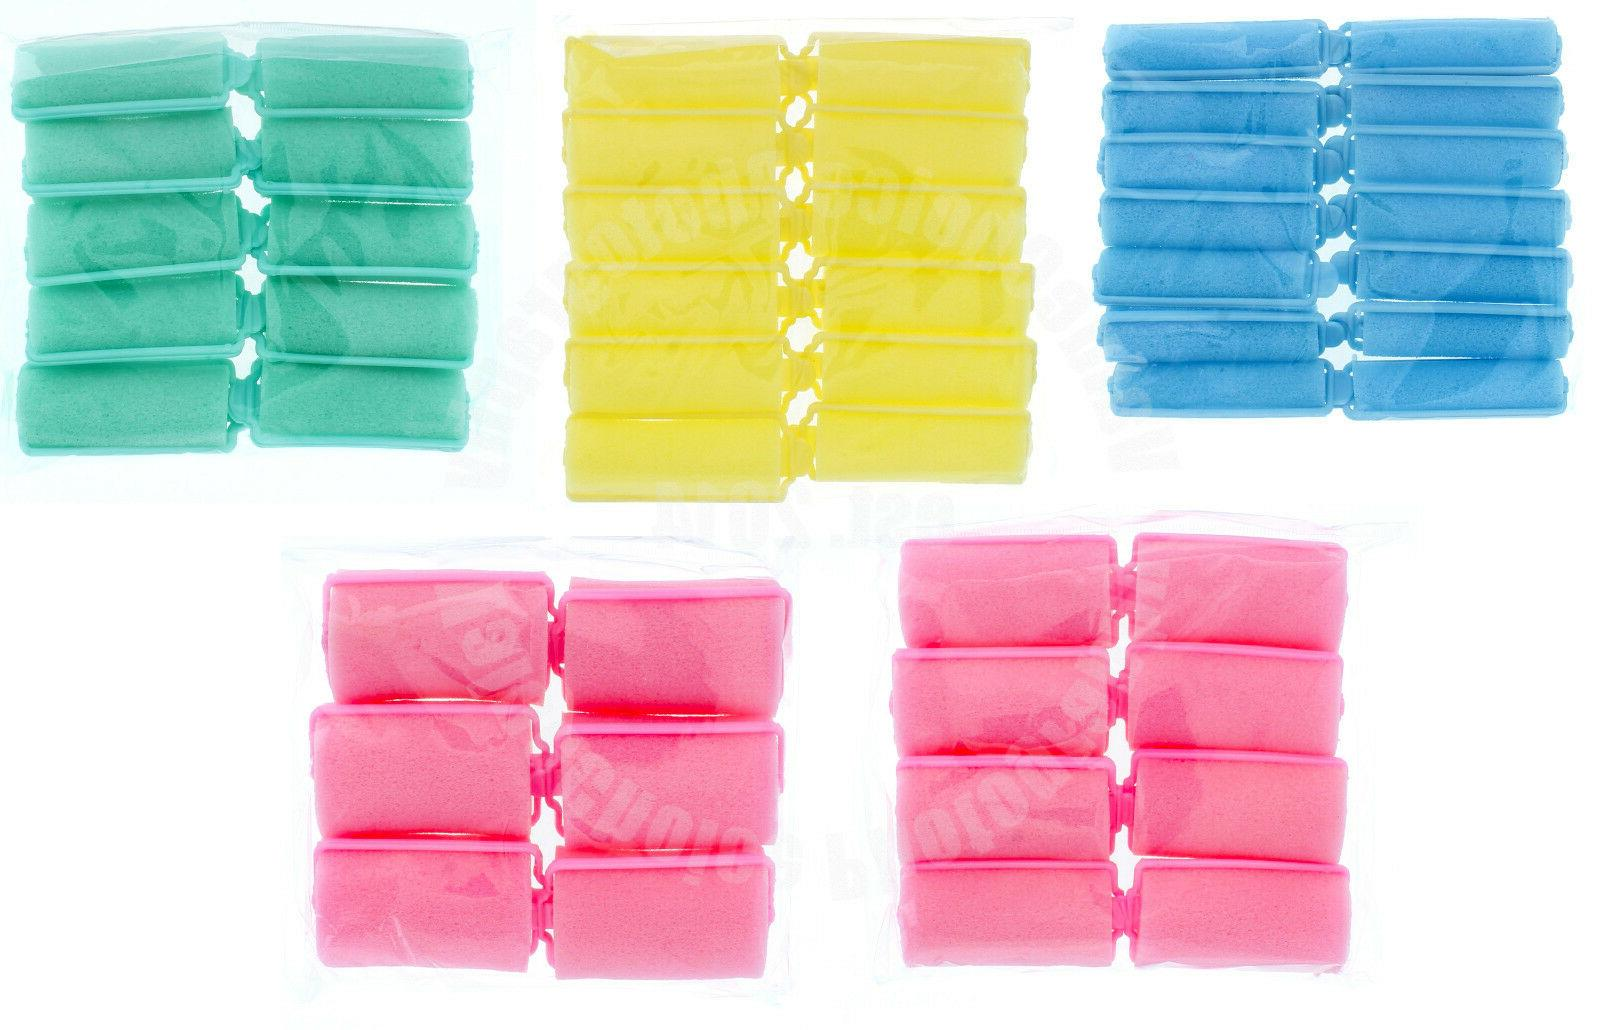 SOFT HAIR ROLLERS,CURLERS SIZES,